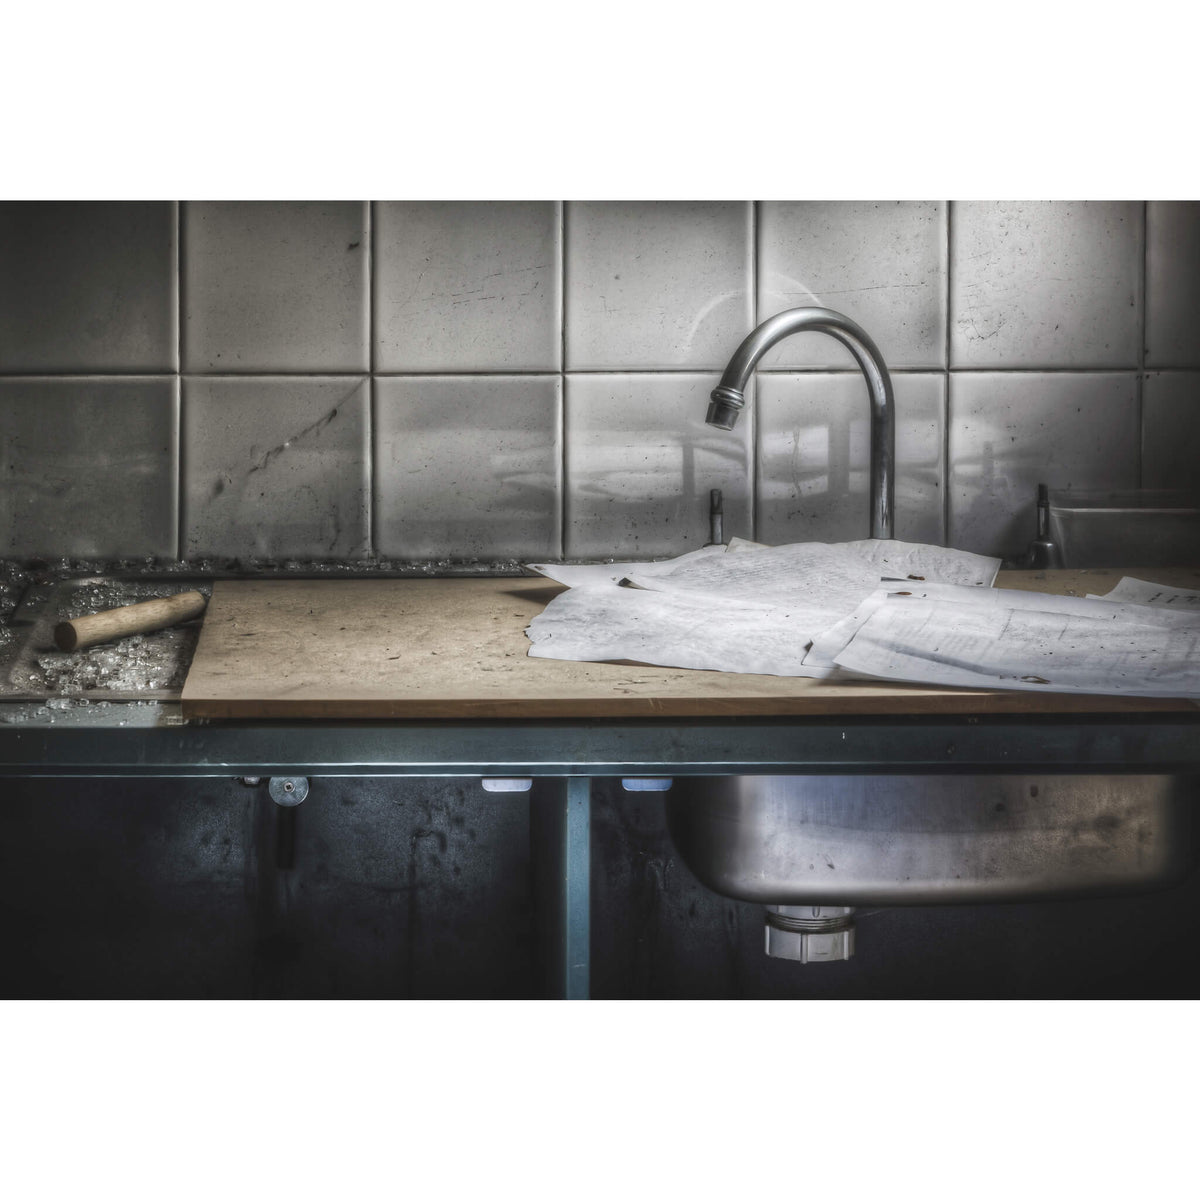 Laboratory Tap | Macquarie Boys Technology High Fine Art Print - Lost Collective Shop